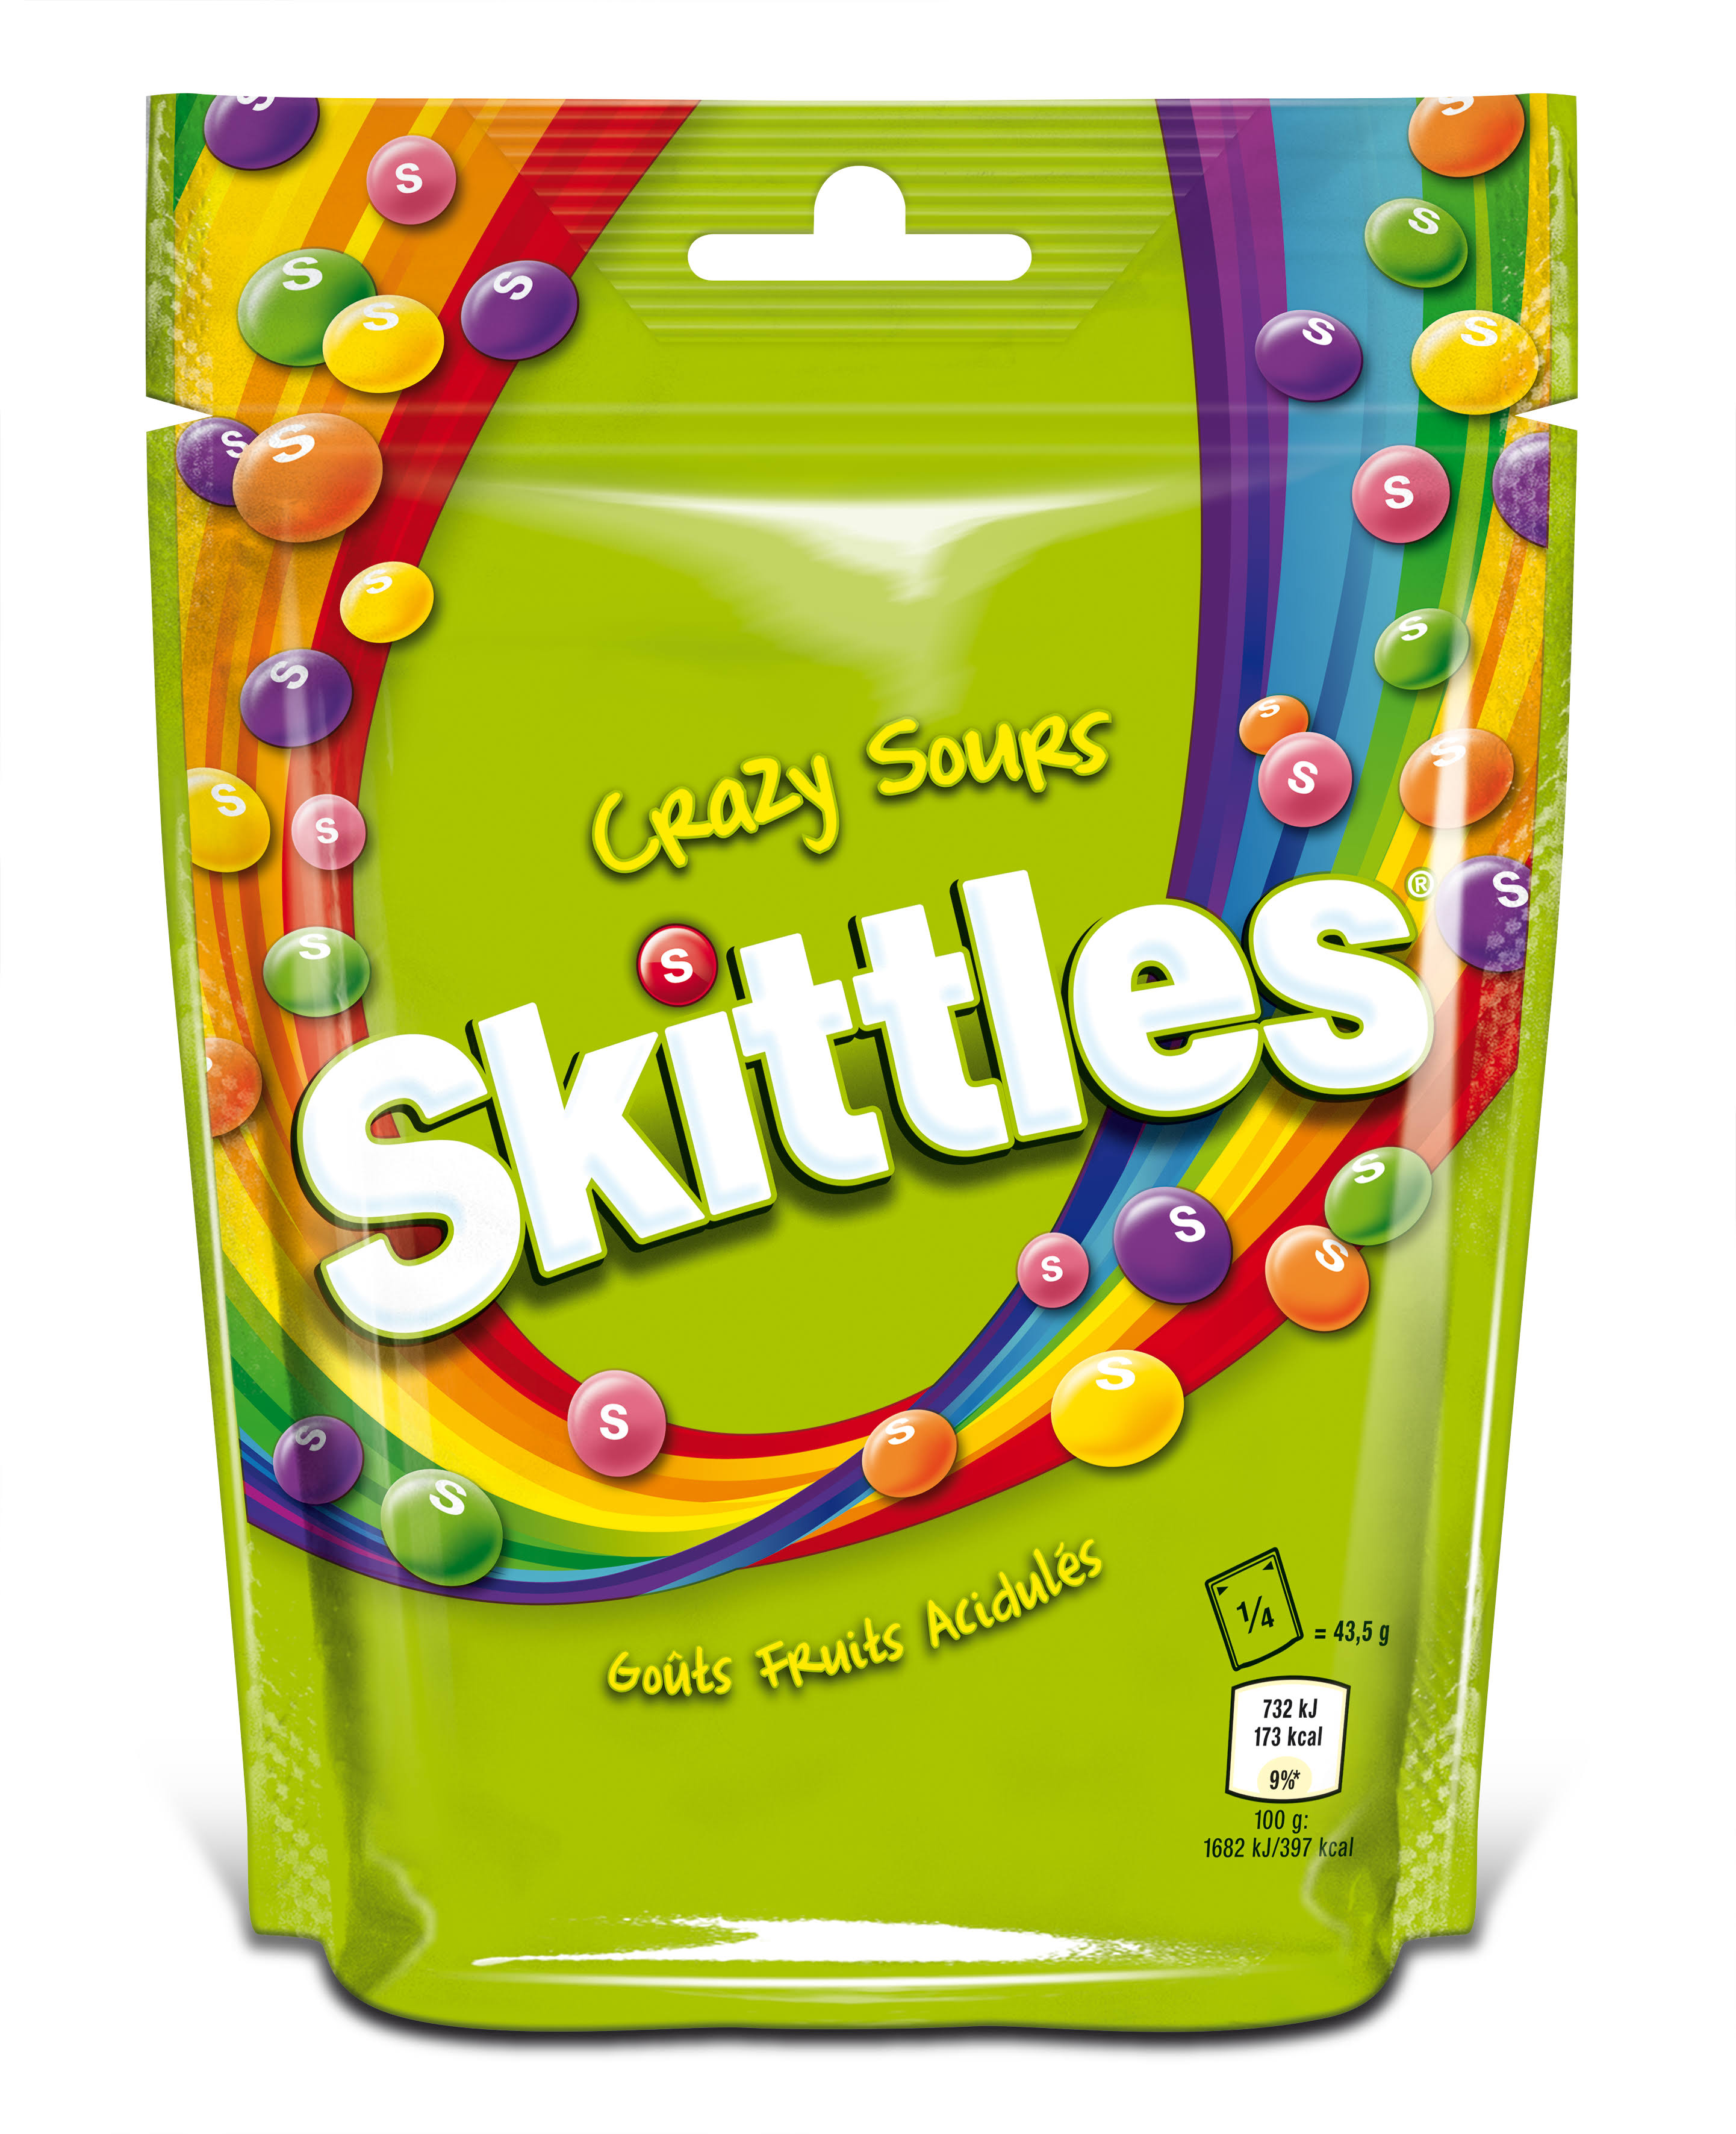 Skittles Crazy Sours Chewy Candies - 174g